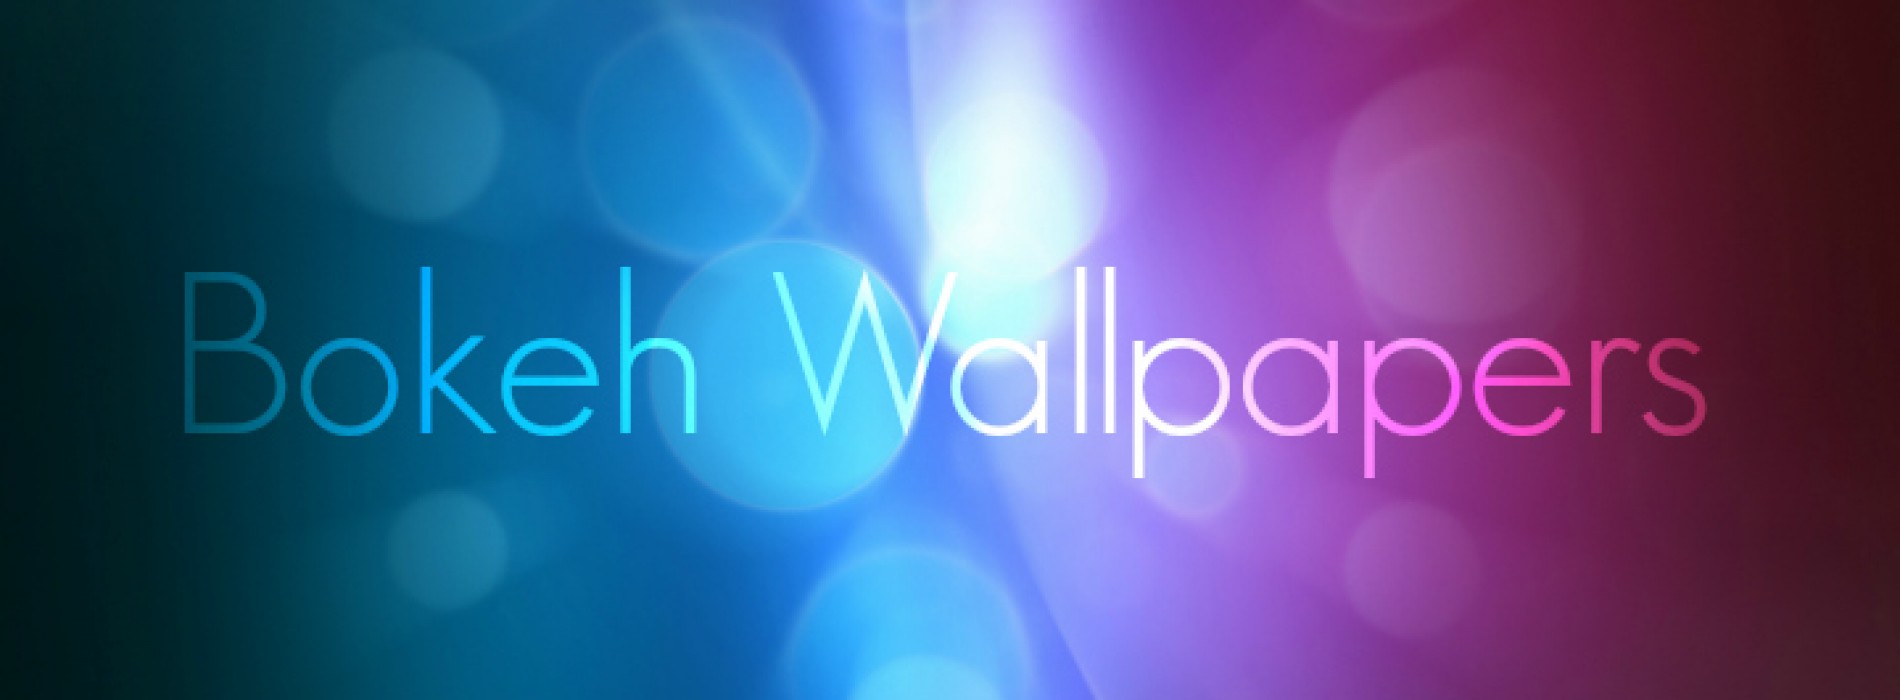 Awesome Wallpapers For Android: 20 Awesome Wallpapers For Your Android (Bokeh Vol. 2